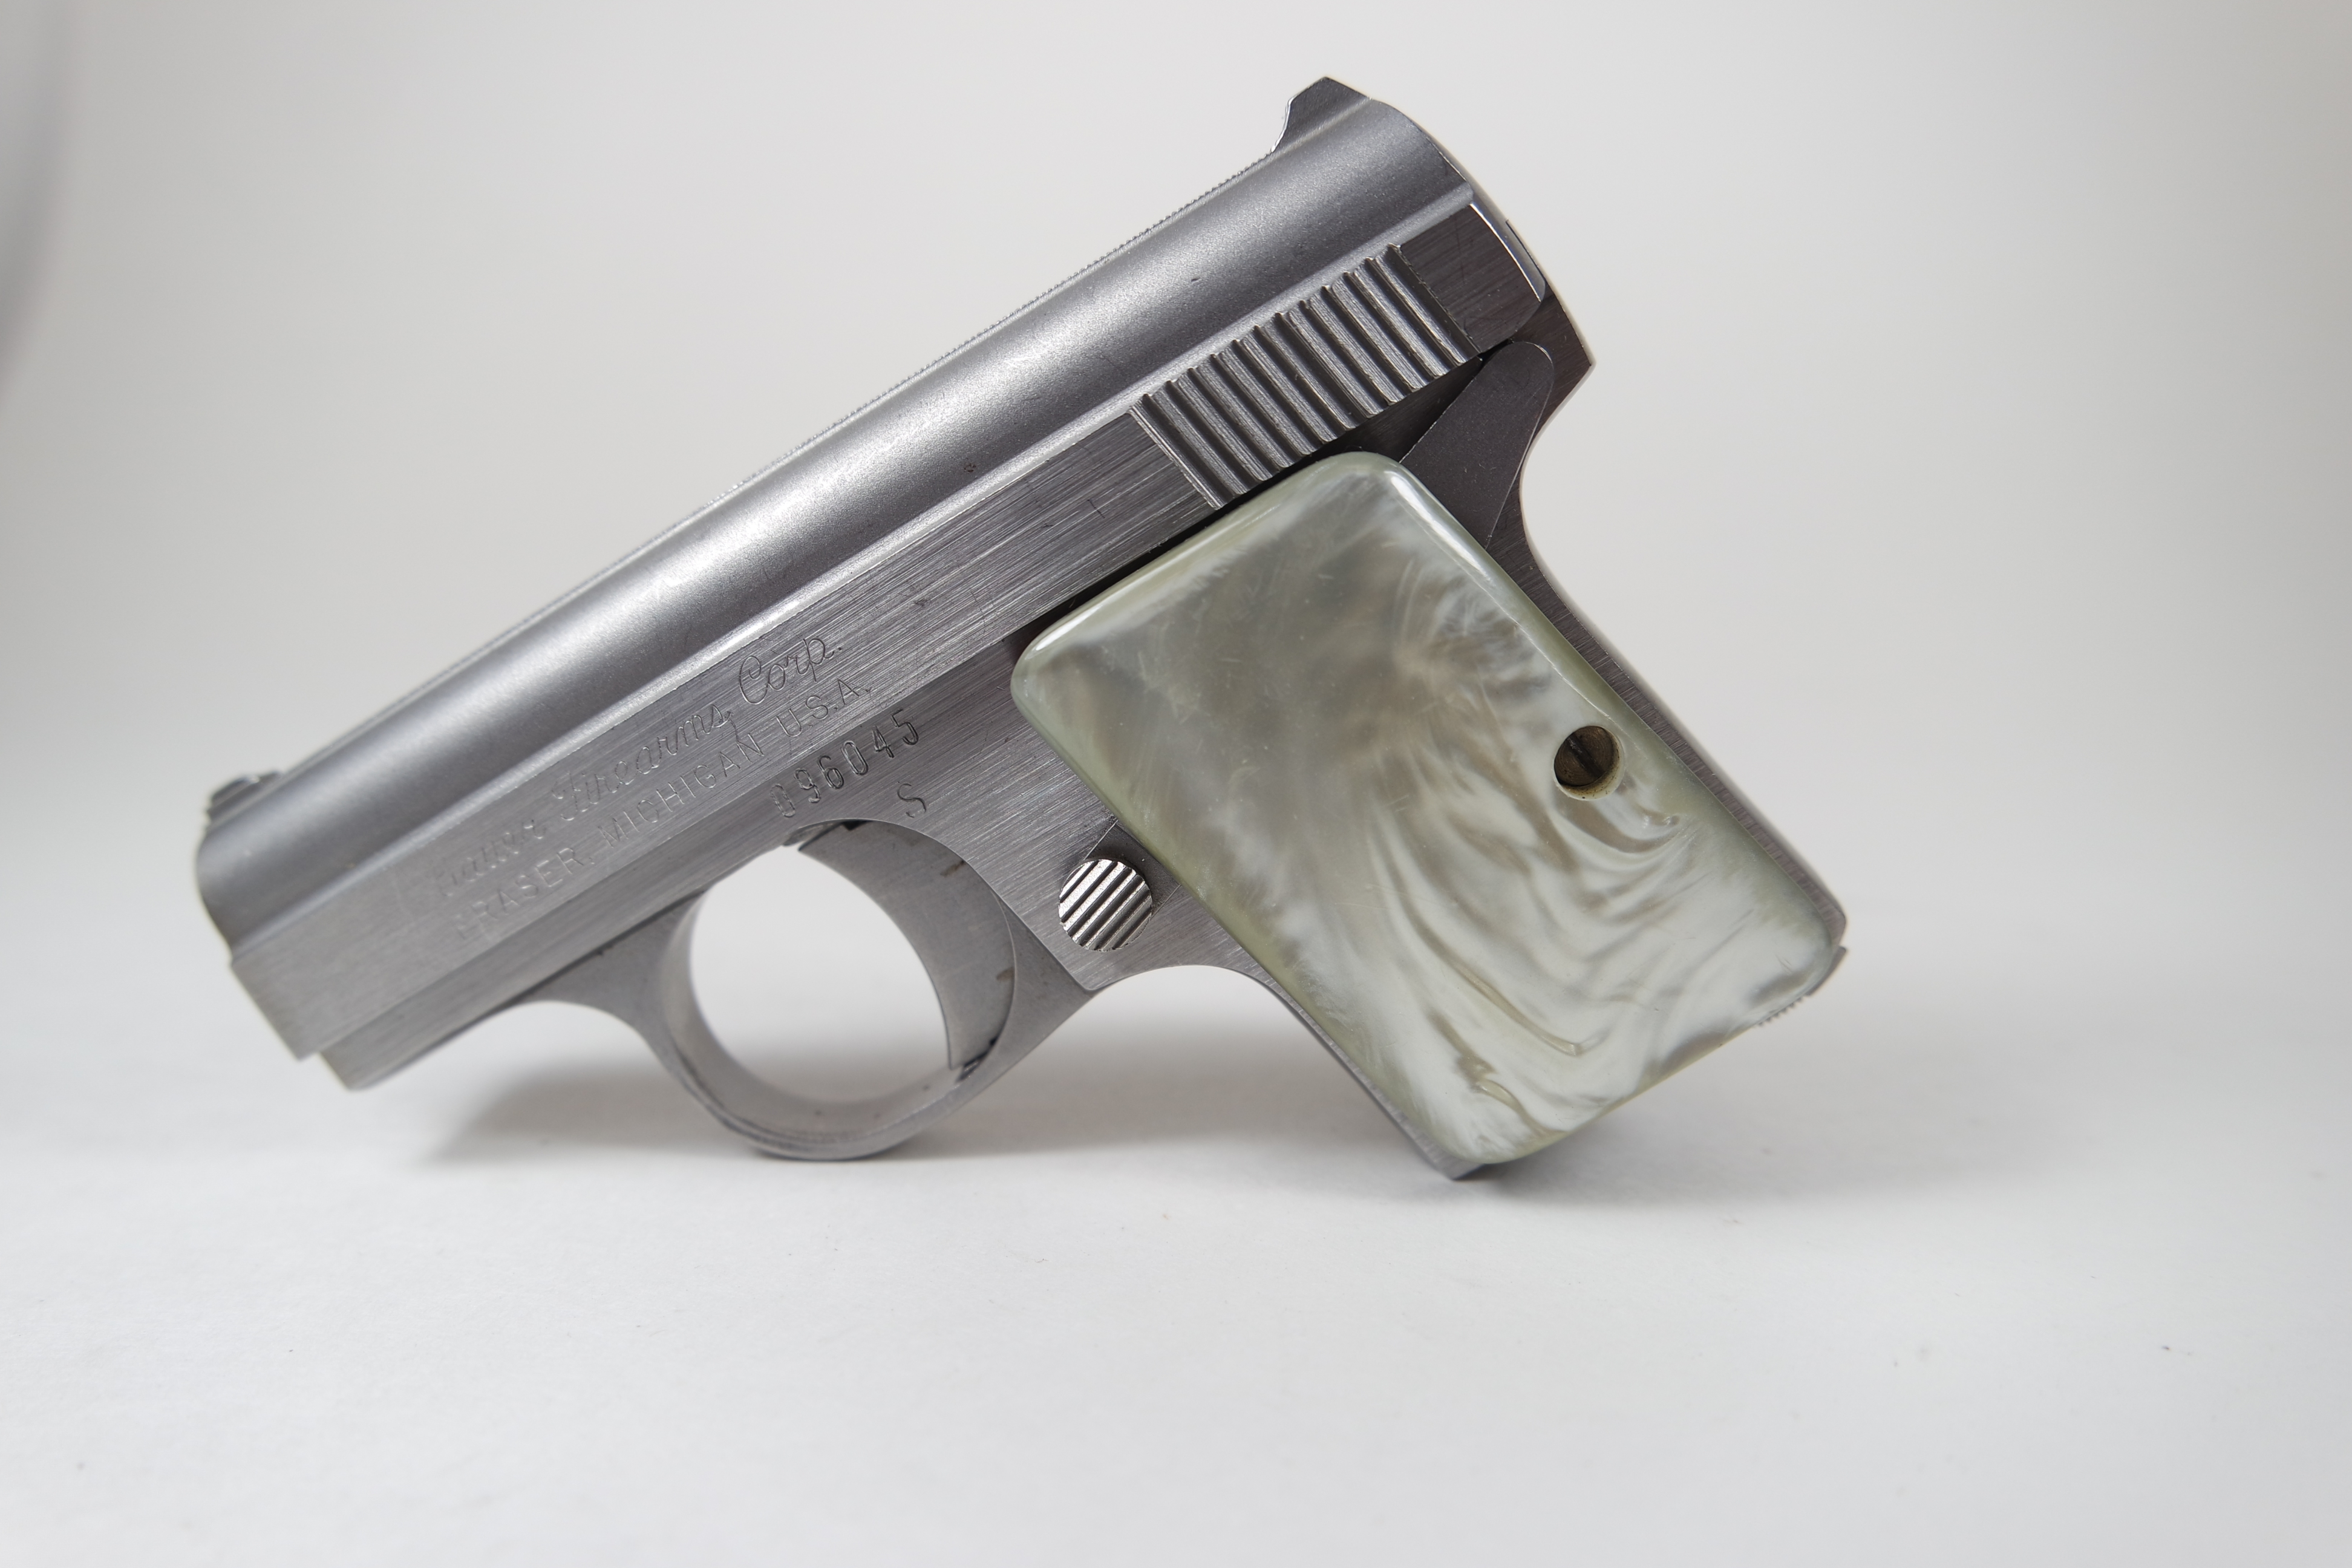 Bauer Automatic .25 stainless steel pistol pearlescent grips Pre-owned